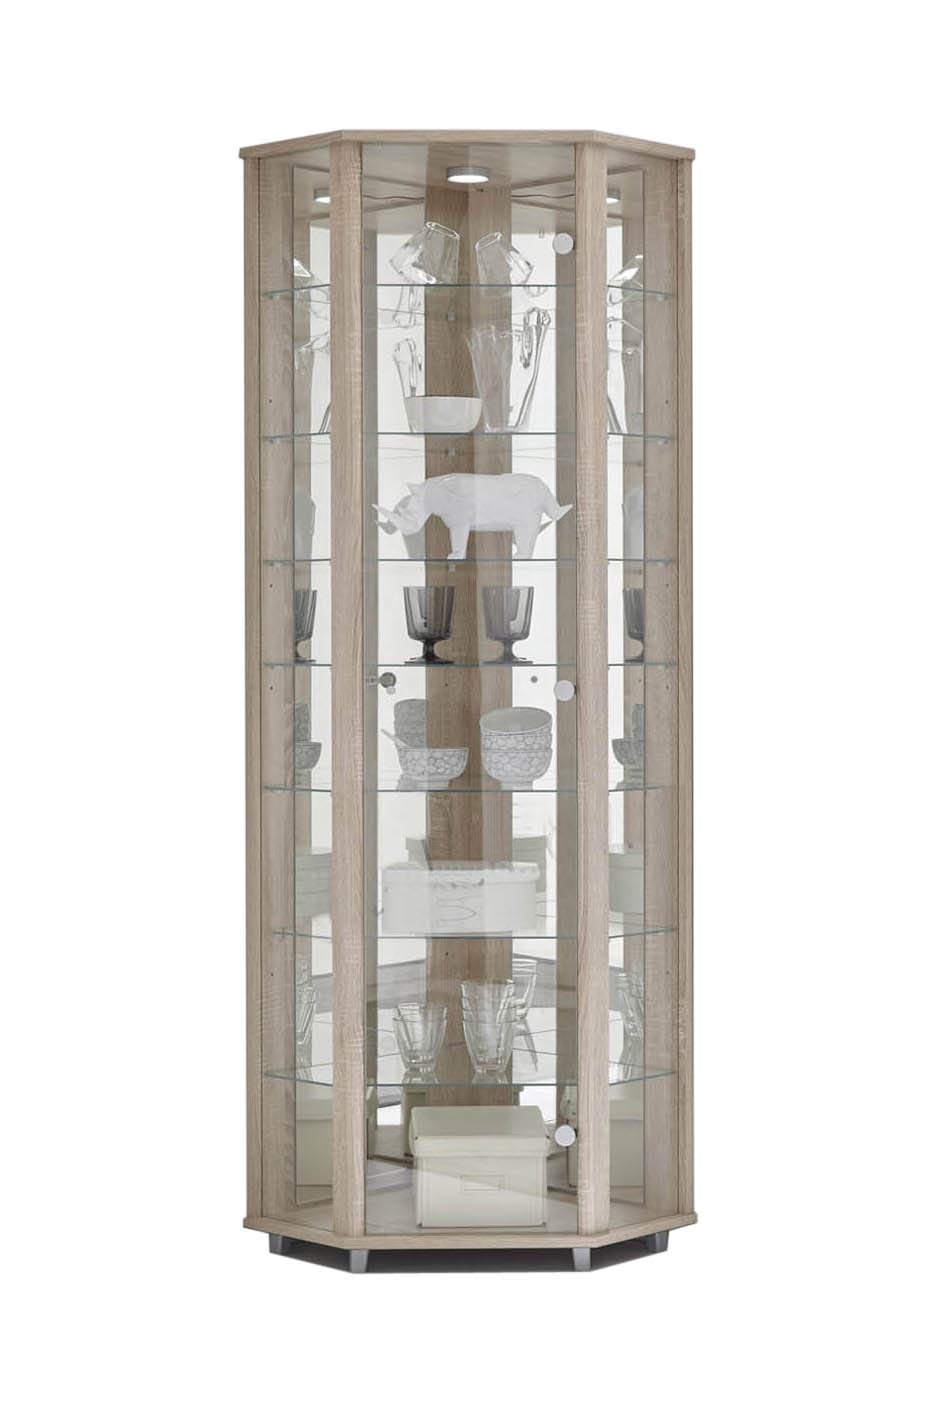 LOCKABLE Fully Assembled Home LED Shelf Lit Double Glass Display Cabinet SILVER with 4 Glass Shelves